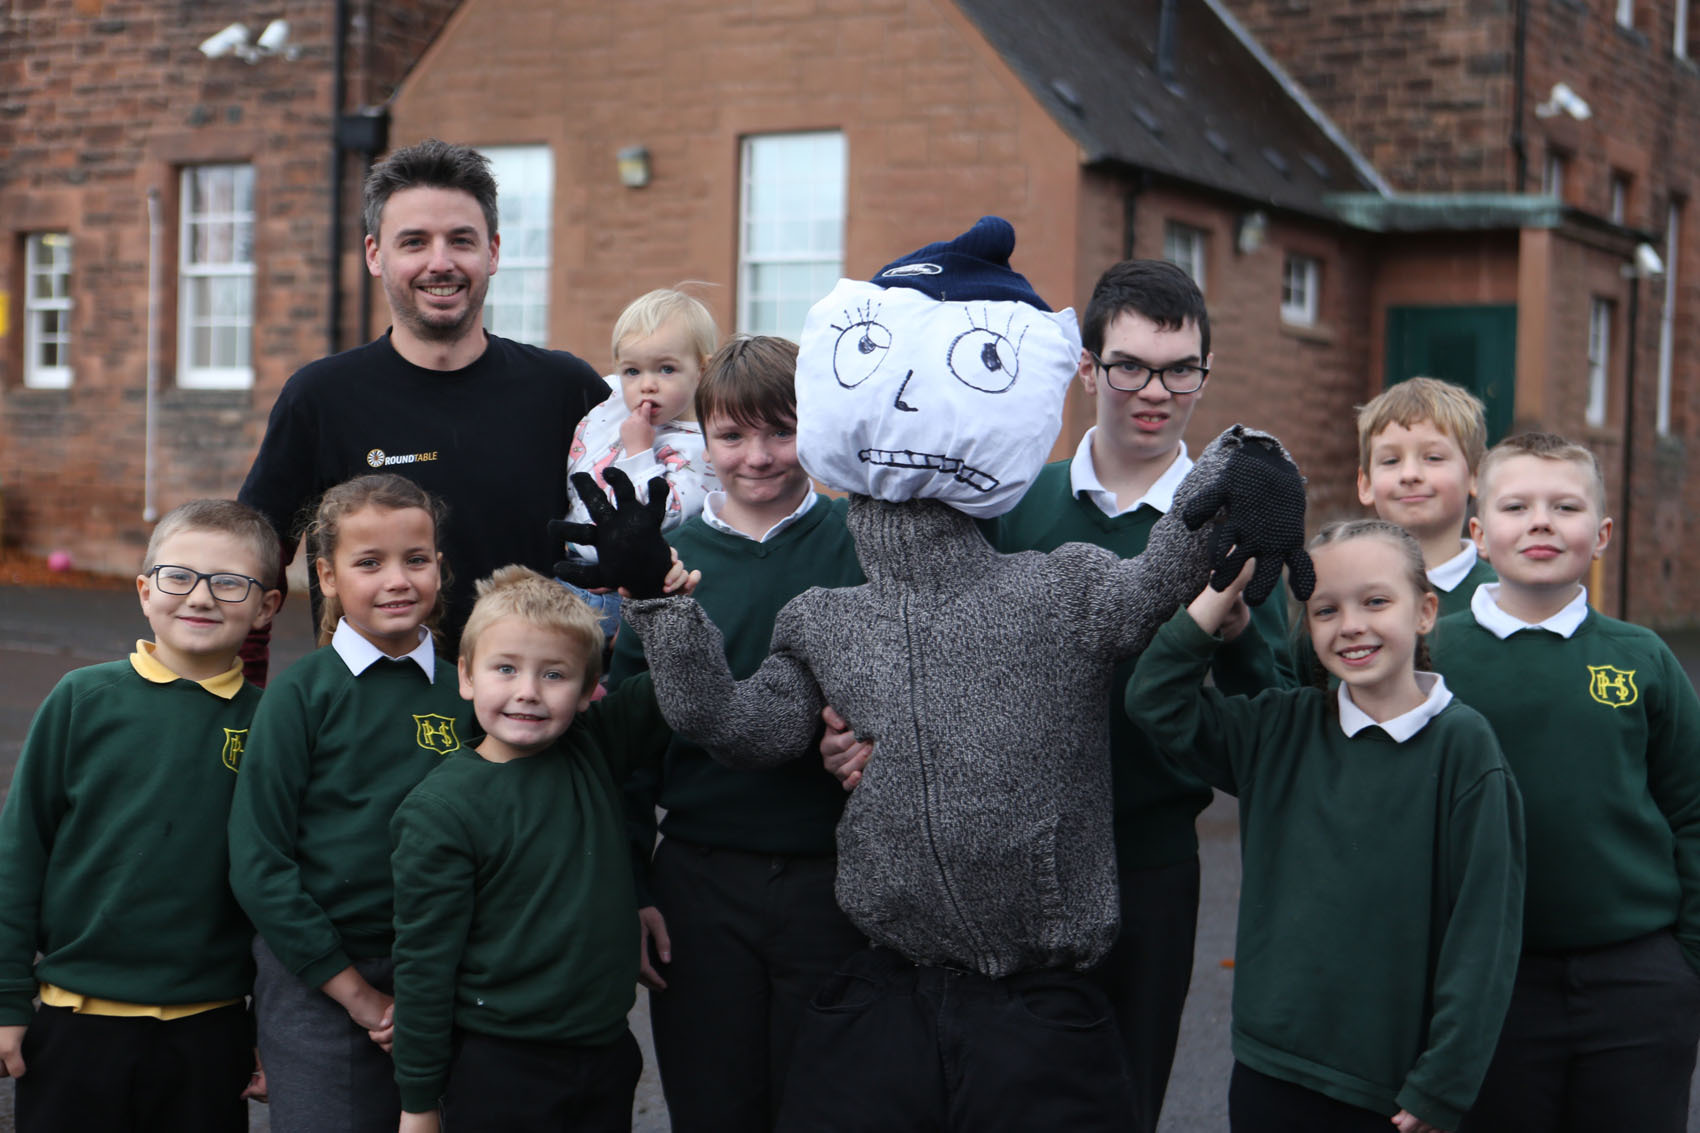 Halyrude Primary School pupils with the Guy they have made for the bonfire, with Matt Kennedy from the Round Table with his daughter Maeve aged two. Photo: Helen Barrington